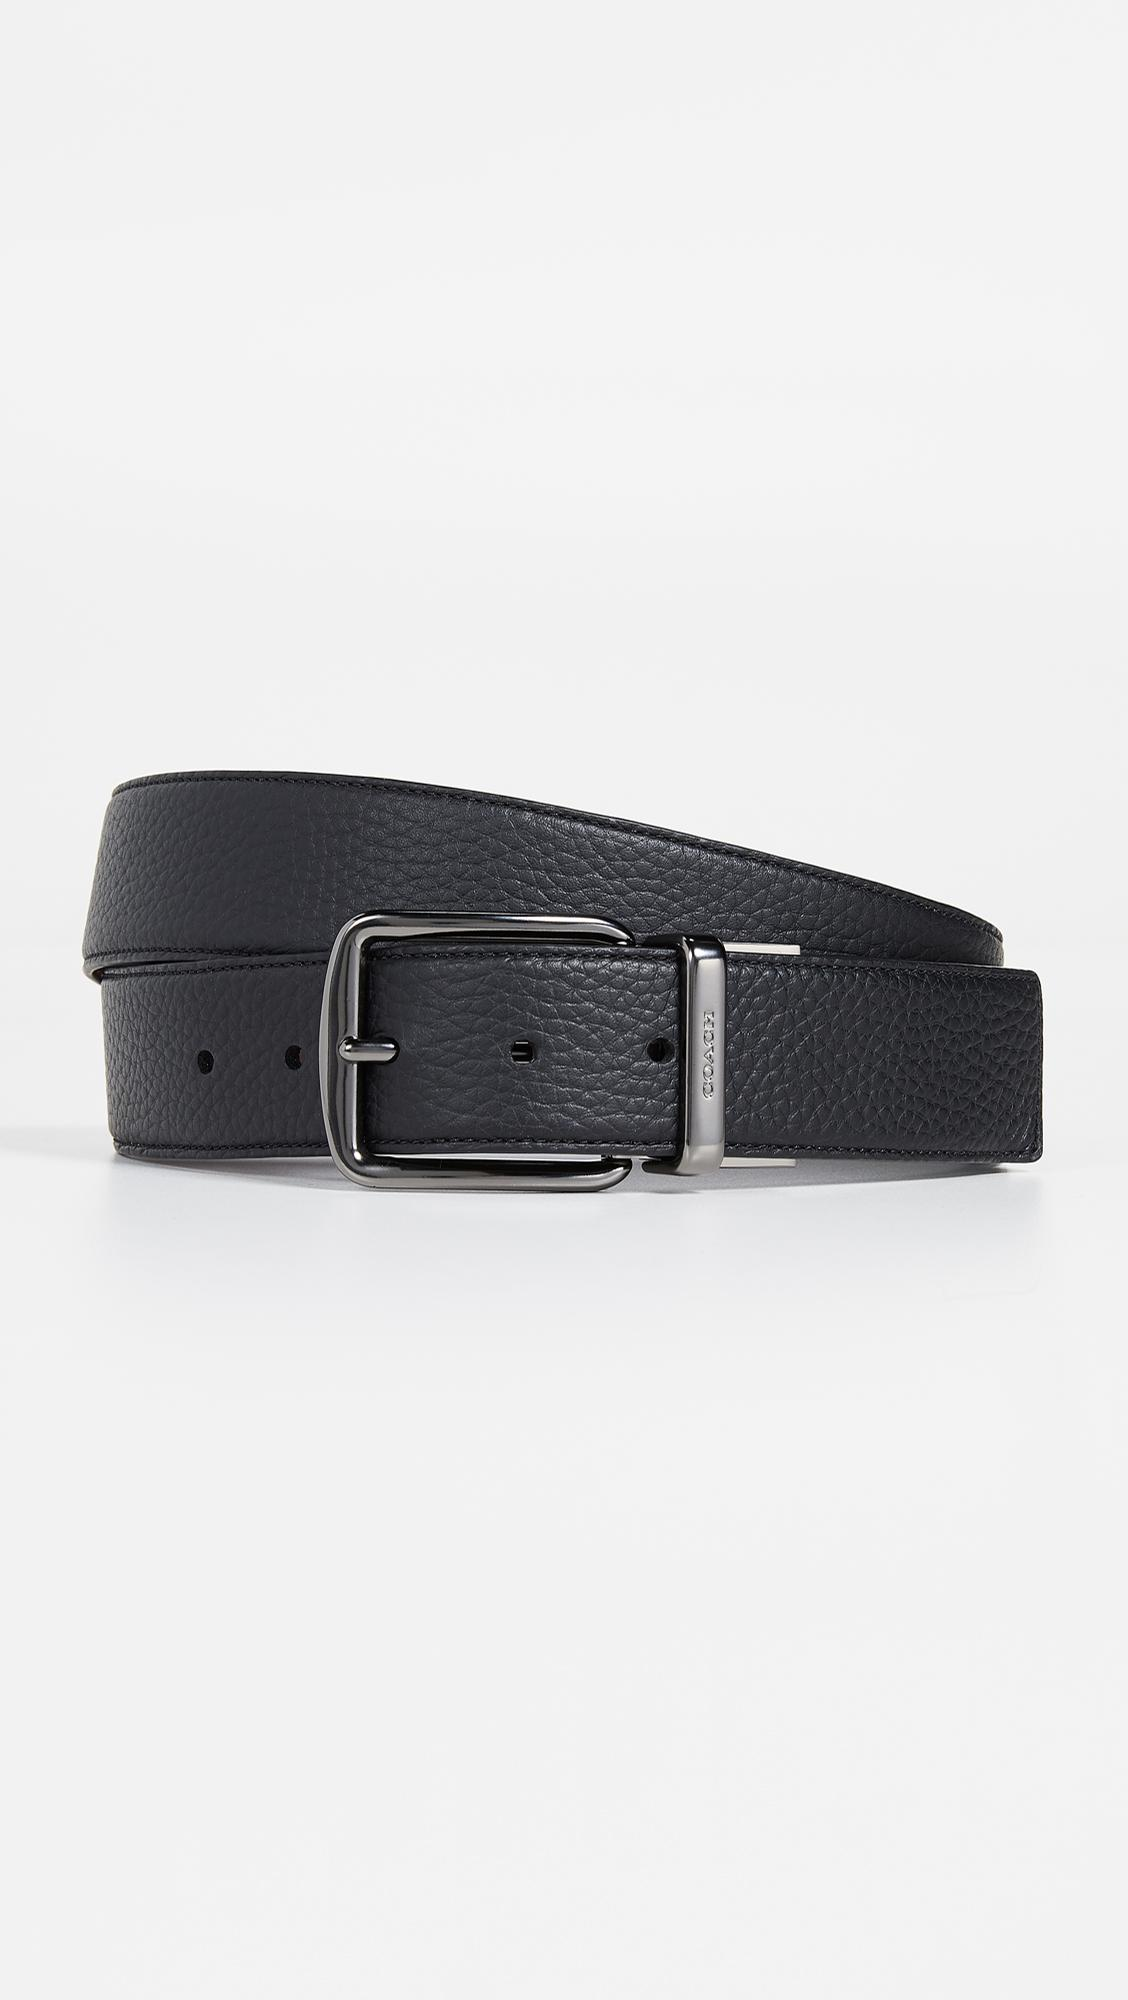 bad656fd4744 Lyst - COACH Wide Leather Belt in Black for Men